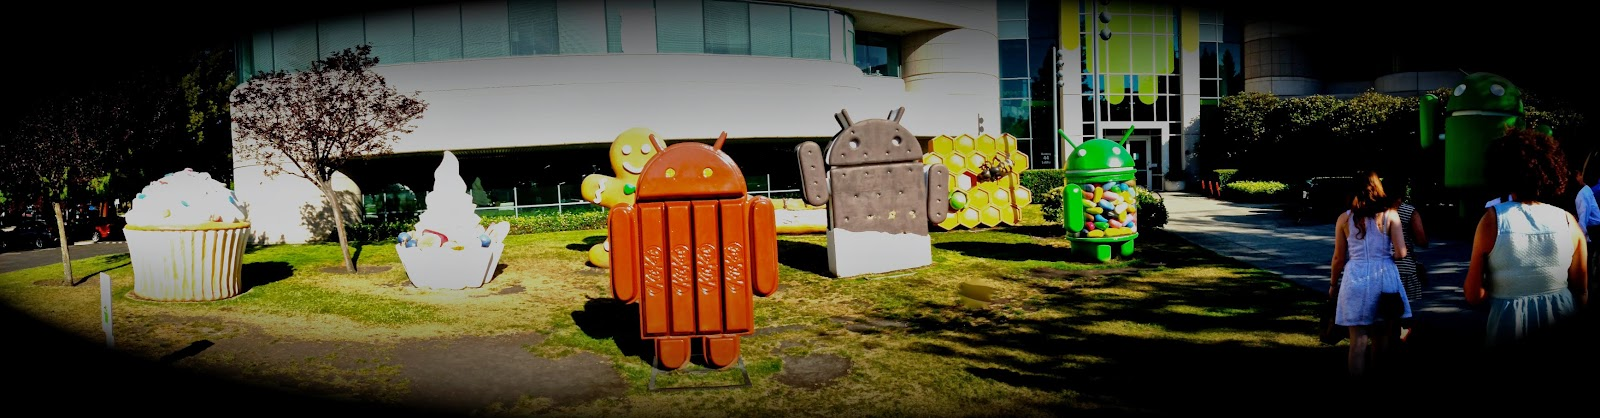 Android Lawn